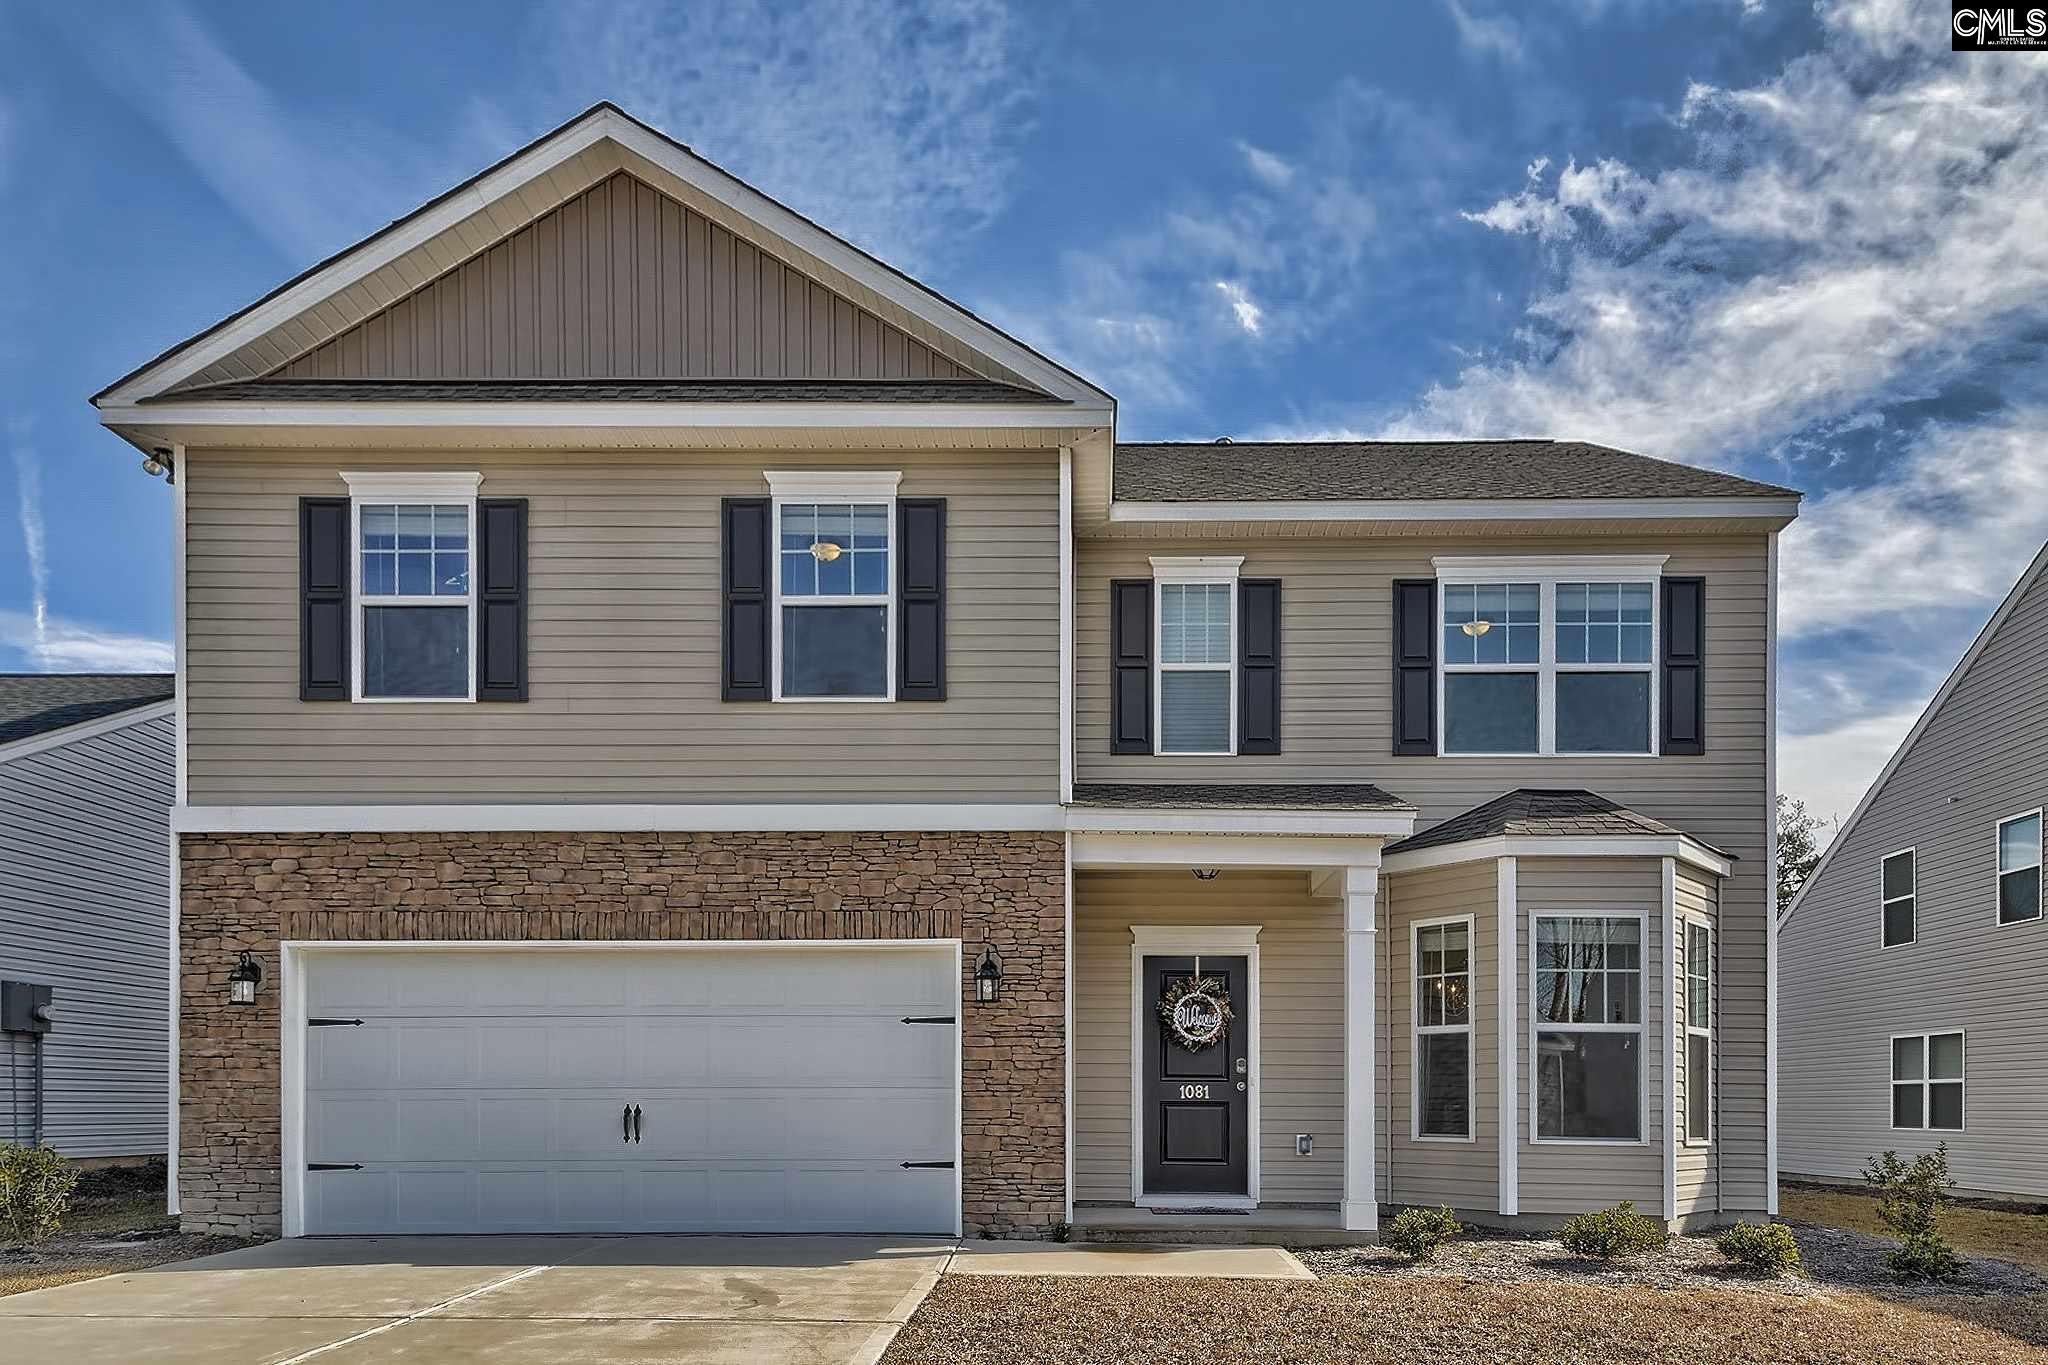 1081 Lake Village Columbia, SC 29229